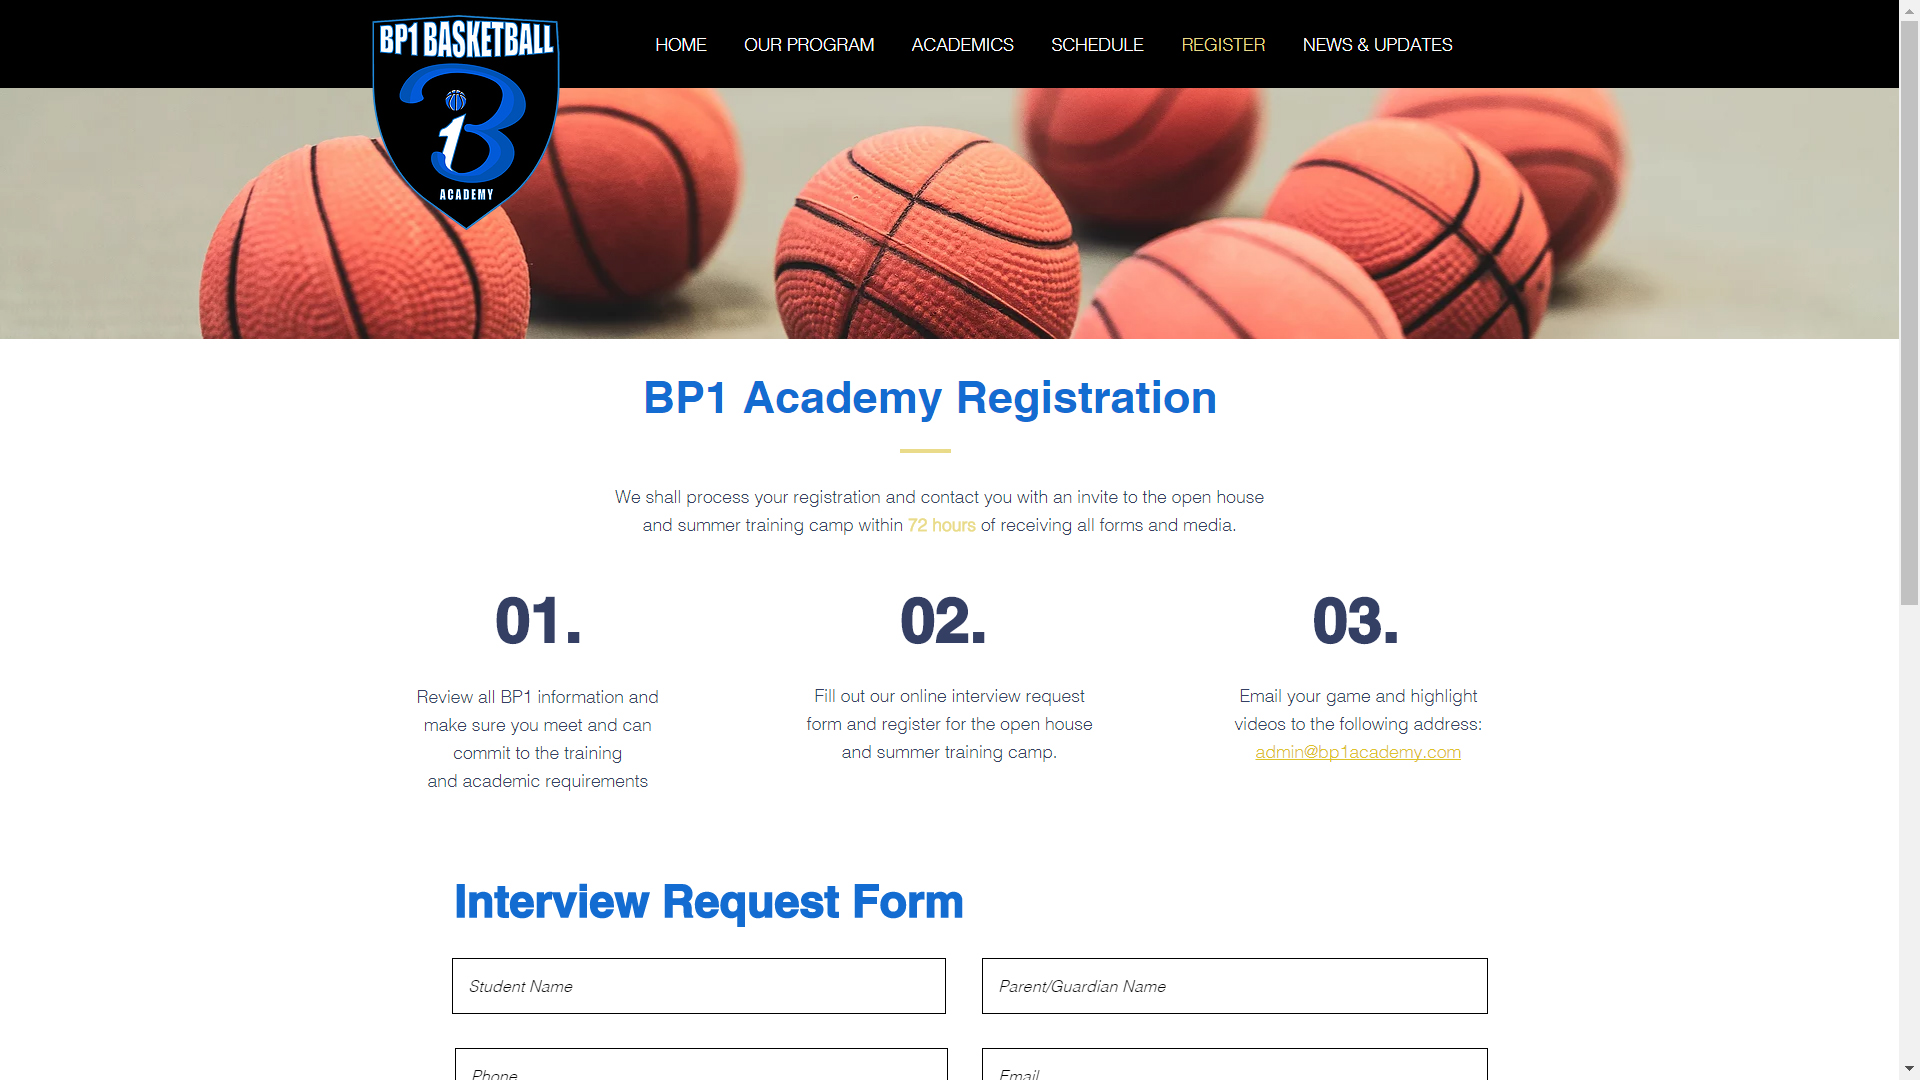 Blues P.H.A.S.E. 1 Basketball Academy (BP1) at Bond Academy is open for registration!